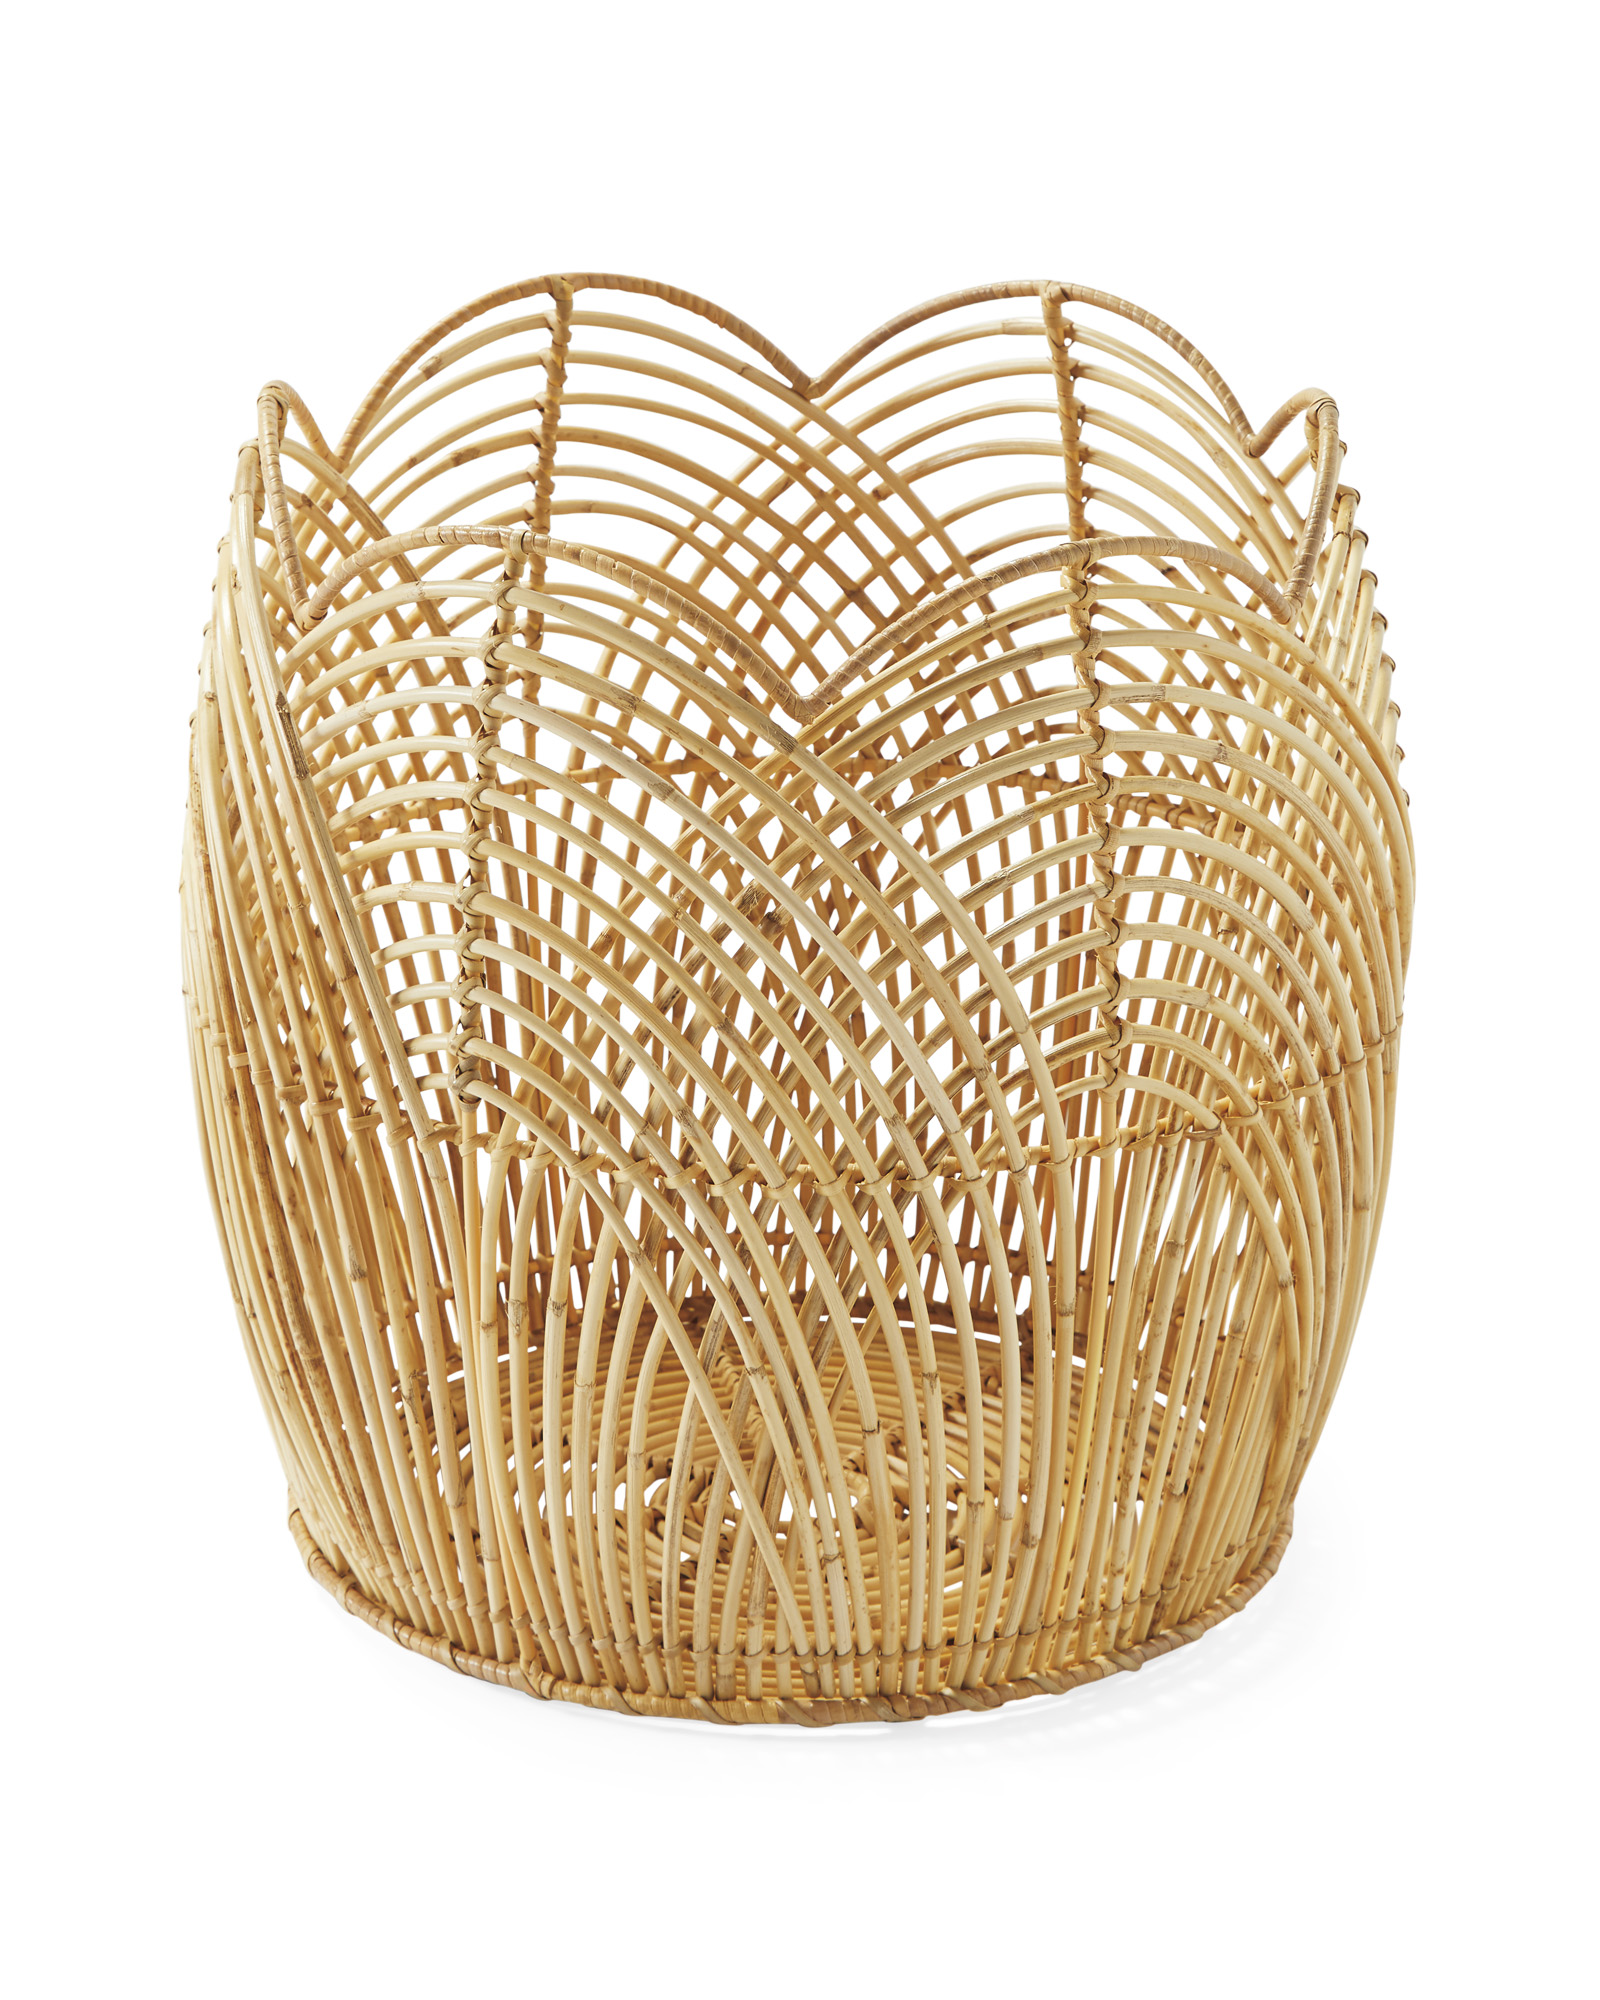 Summerwood Baskets,